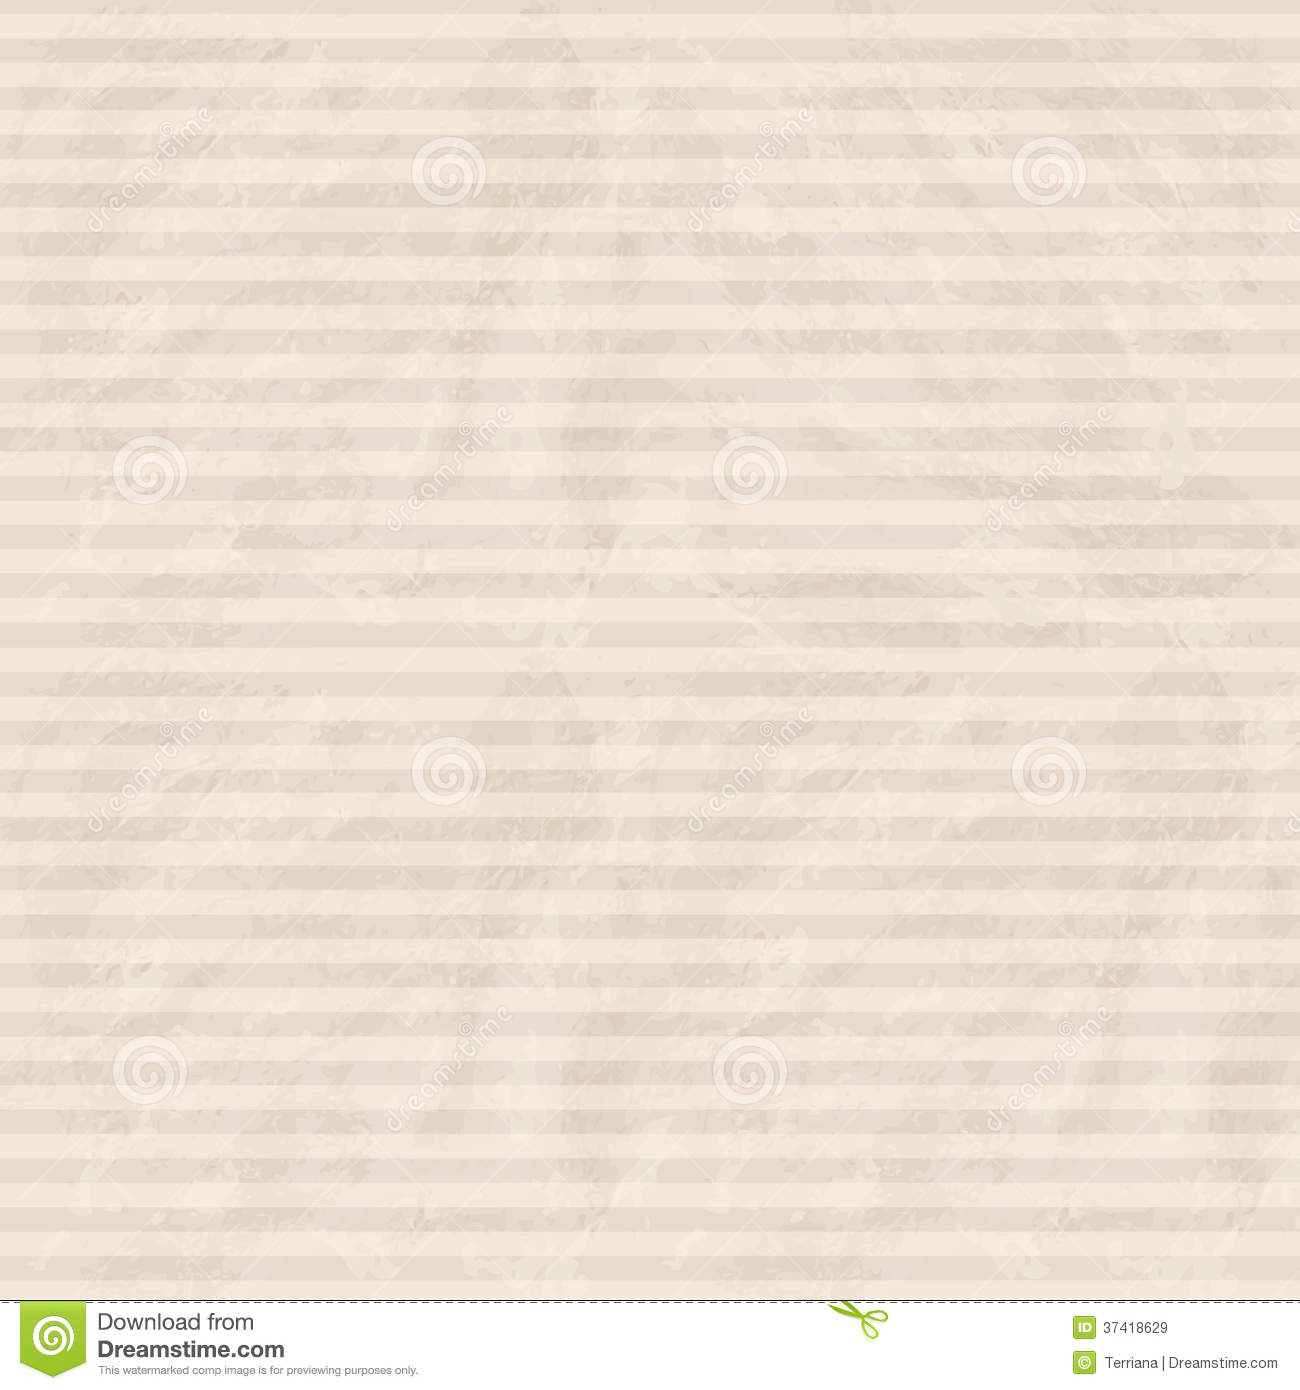 Line Texture Background : Abstract texture with striped pattern paper background